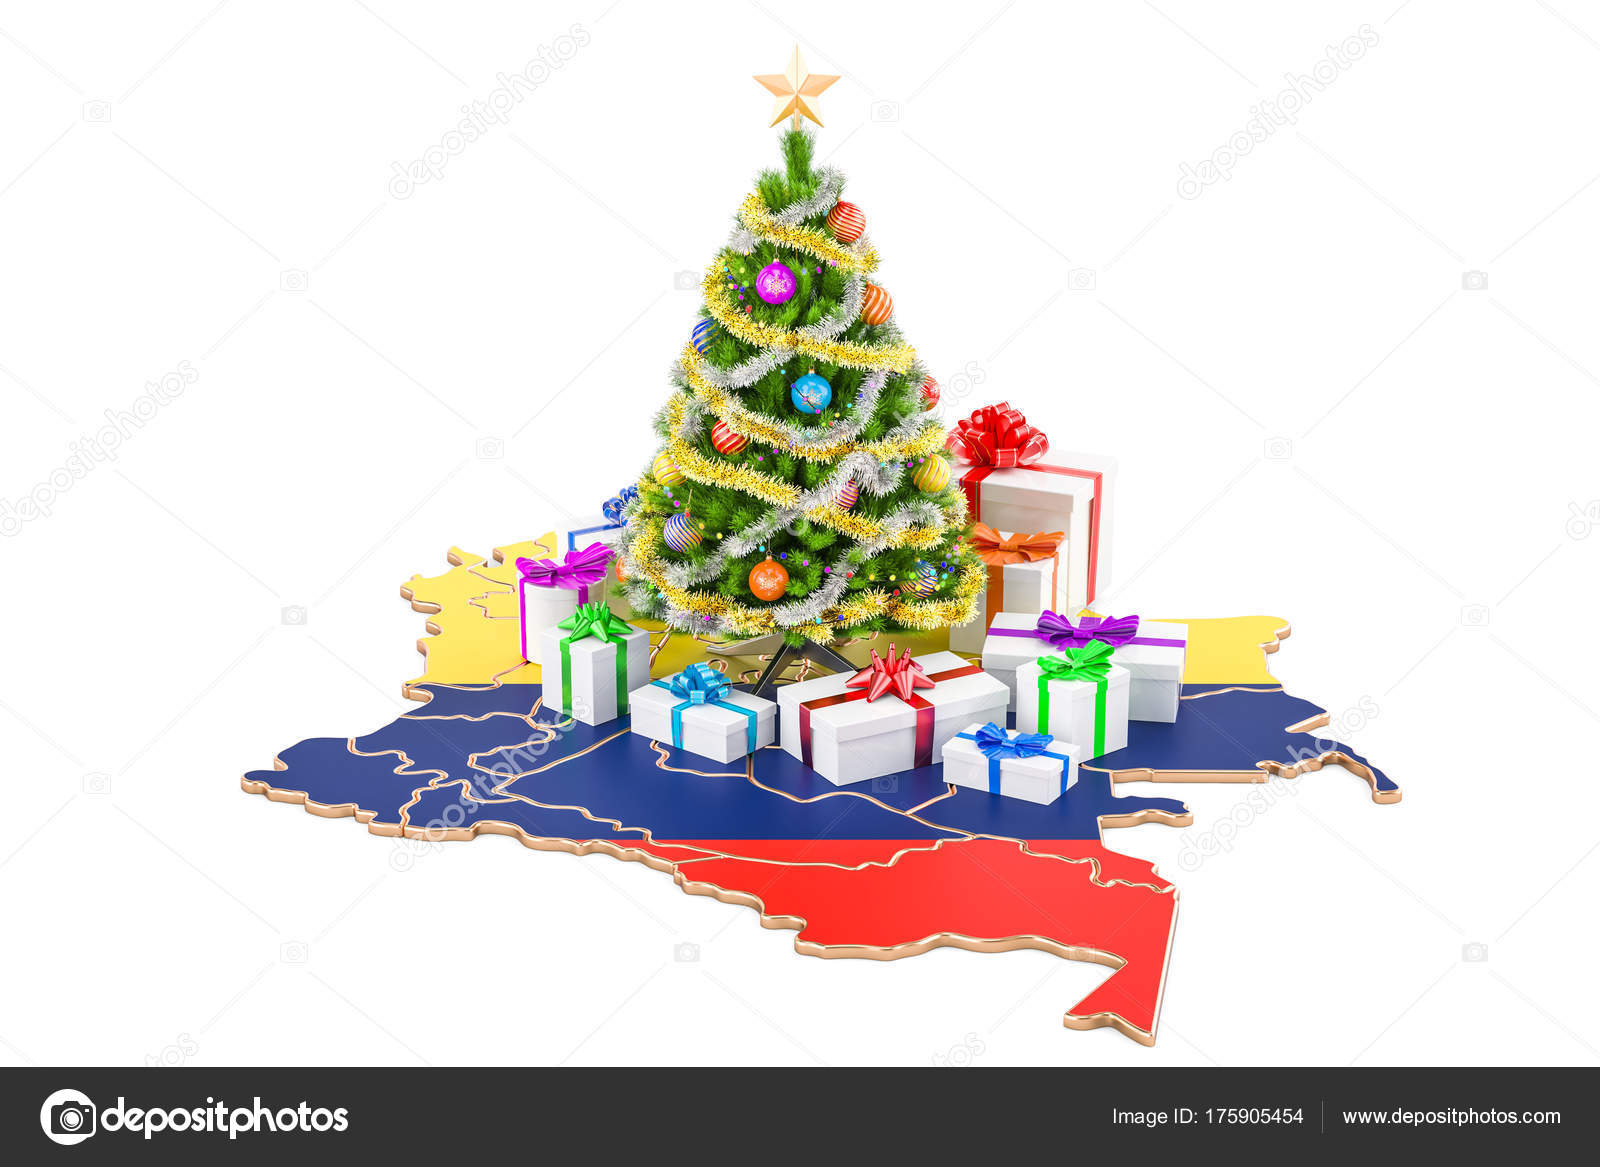 Christmas In Colombia.Christmas And New Year Holidays In Colombia Concept 3d